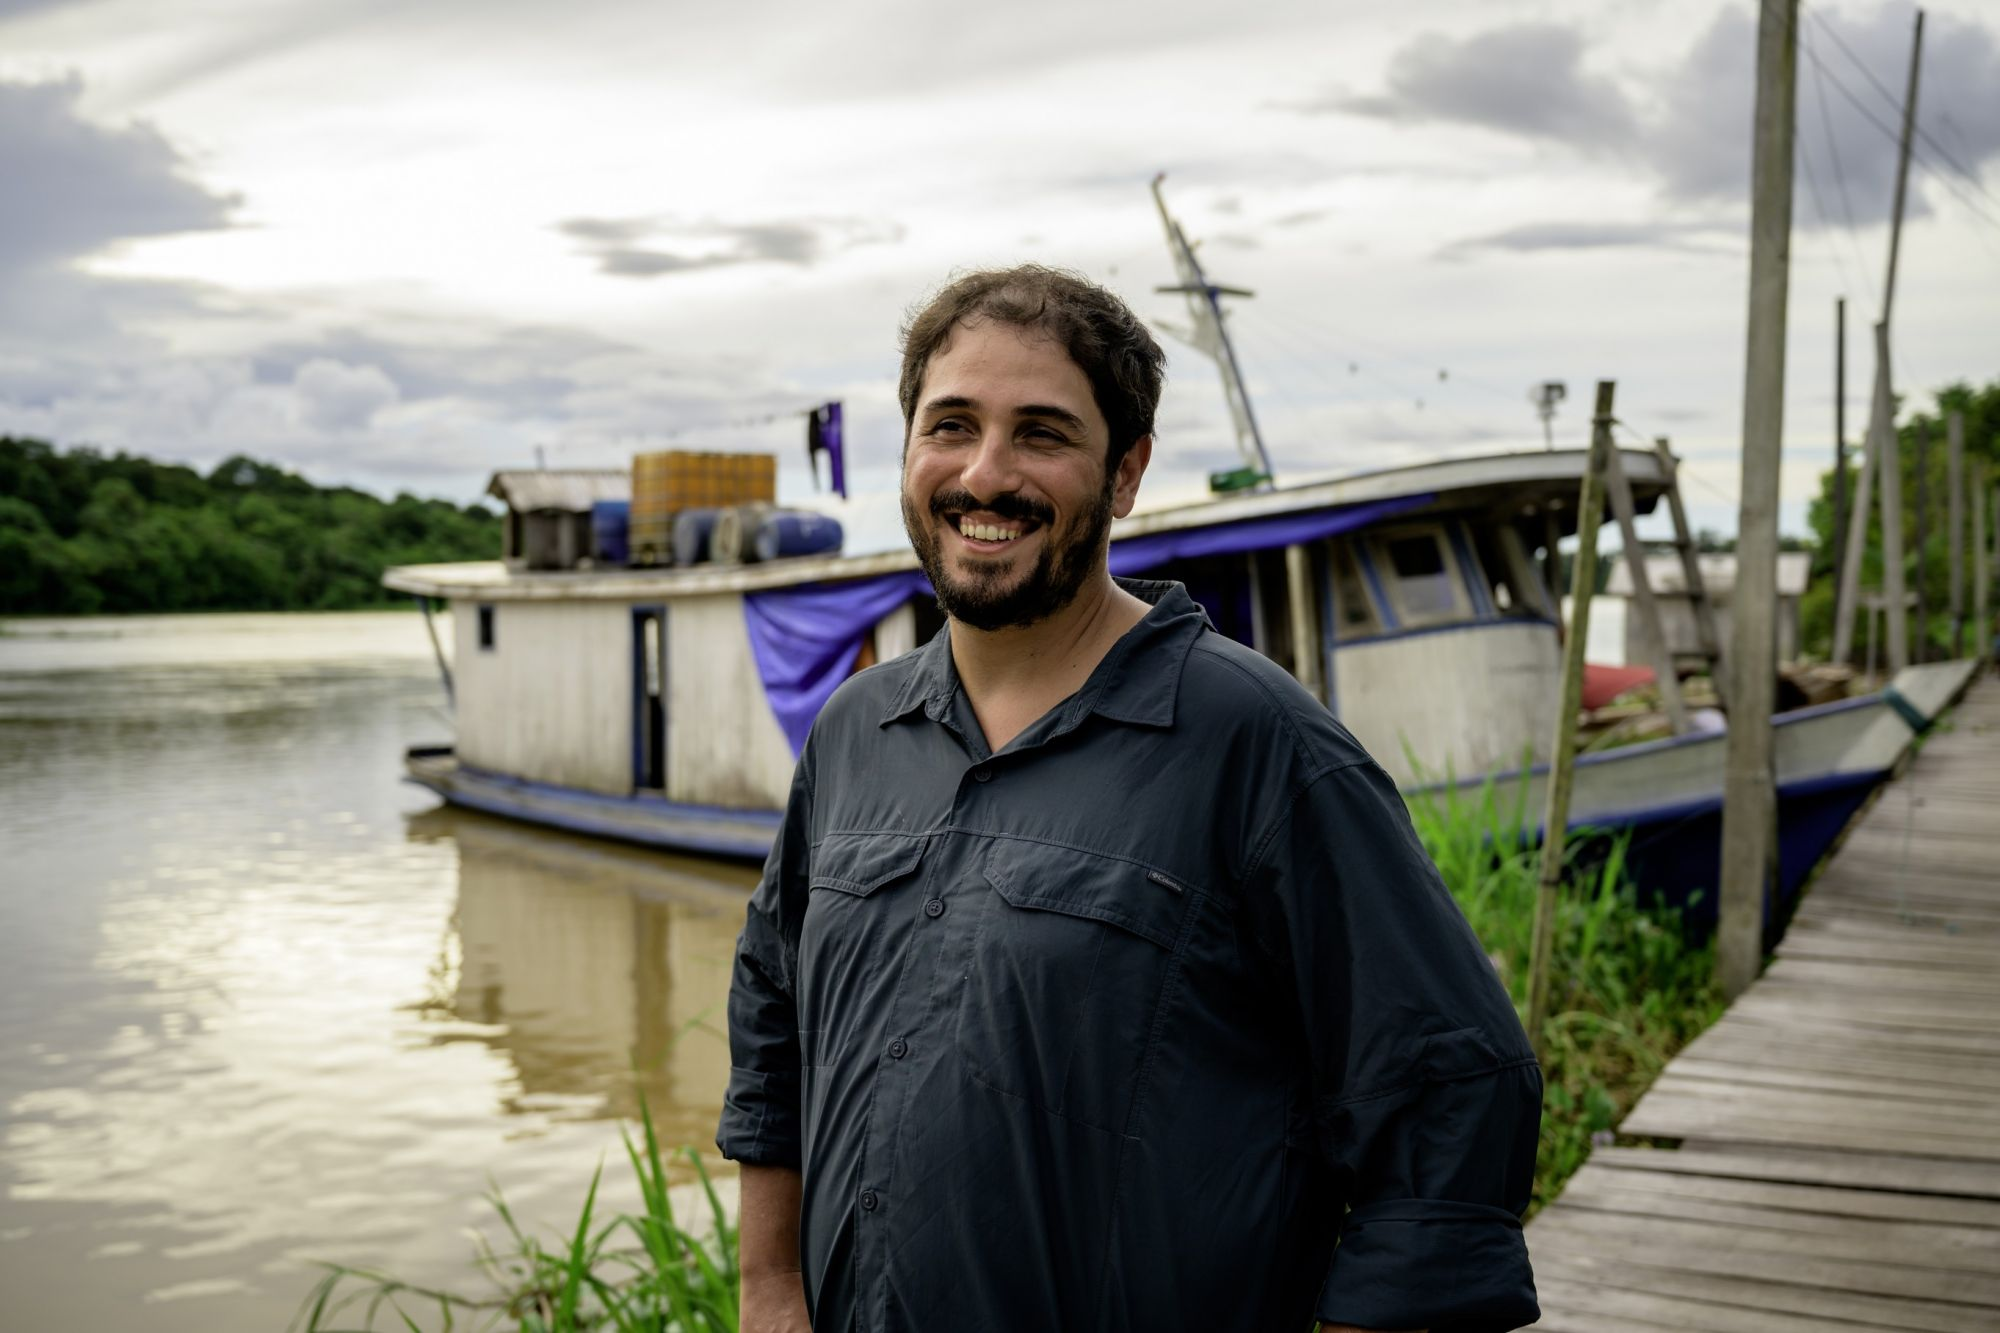 João Campos‐Silva at Uacari, a sustainable development reserve in the Amazon